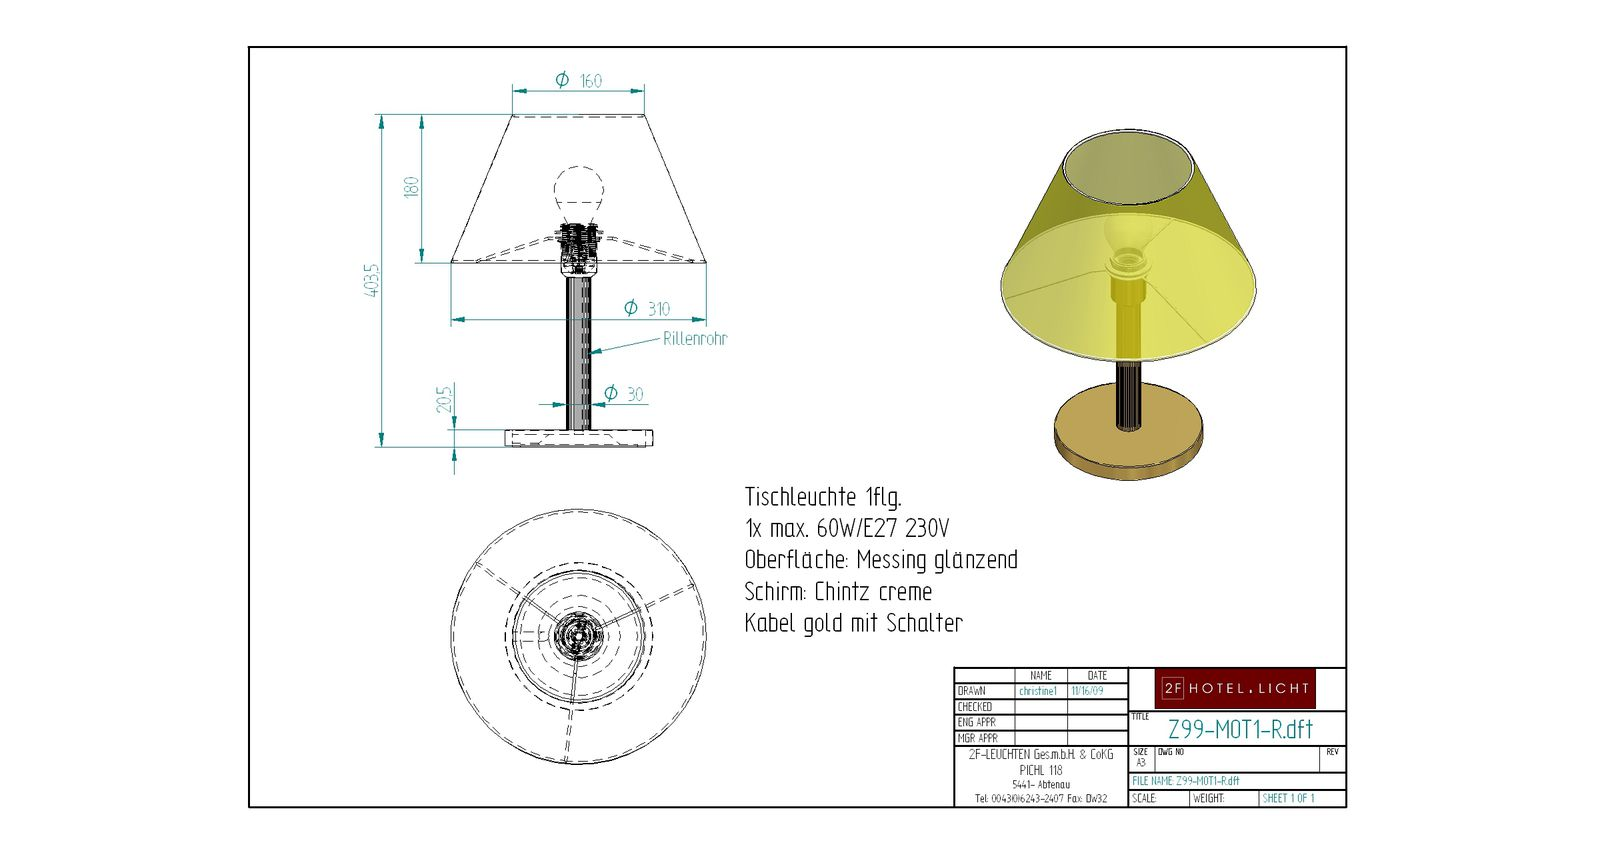 Table lamp H=310 technical details: 1x60W E27